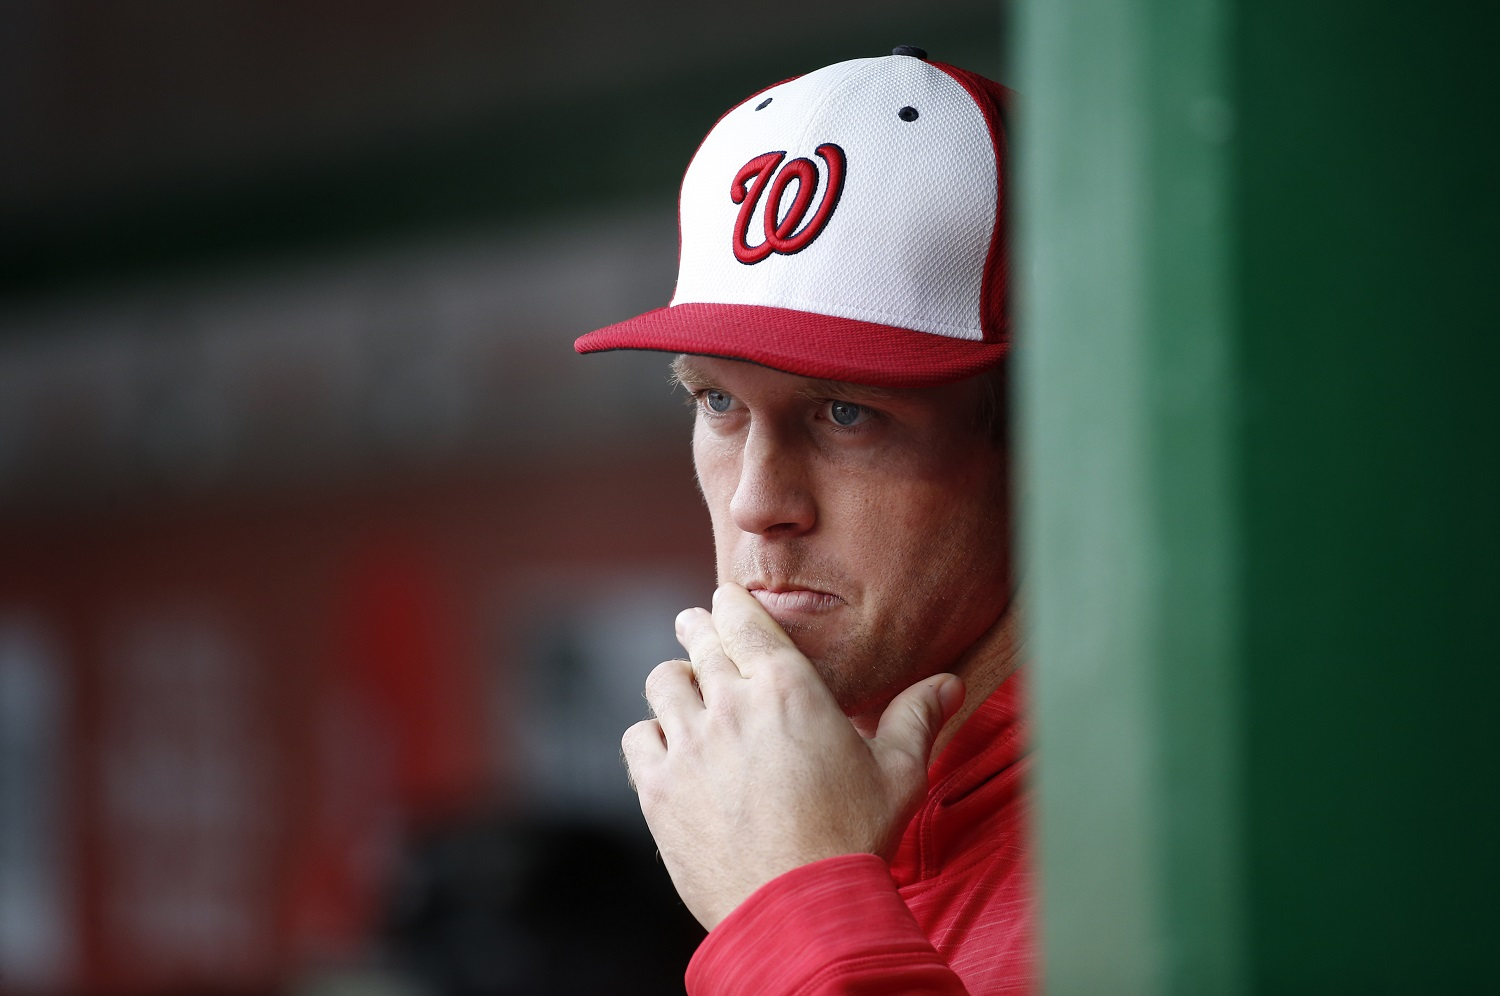 Washington Nationals starting pitcher Stephen Strasburg (37) pauses in the dugout during an exhibition baseball game against the Minnesota Twins at Nationals Park, Saturday, April 2, 2016, in Washington. The game ended in an 8-8 tie. (AP Photo/Alex Brandon)